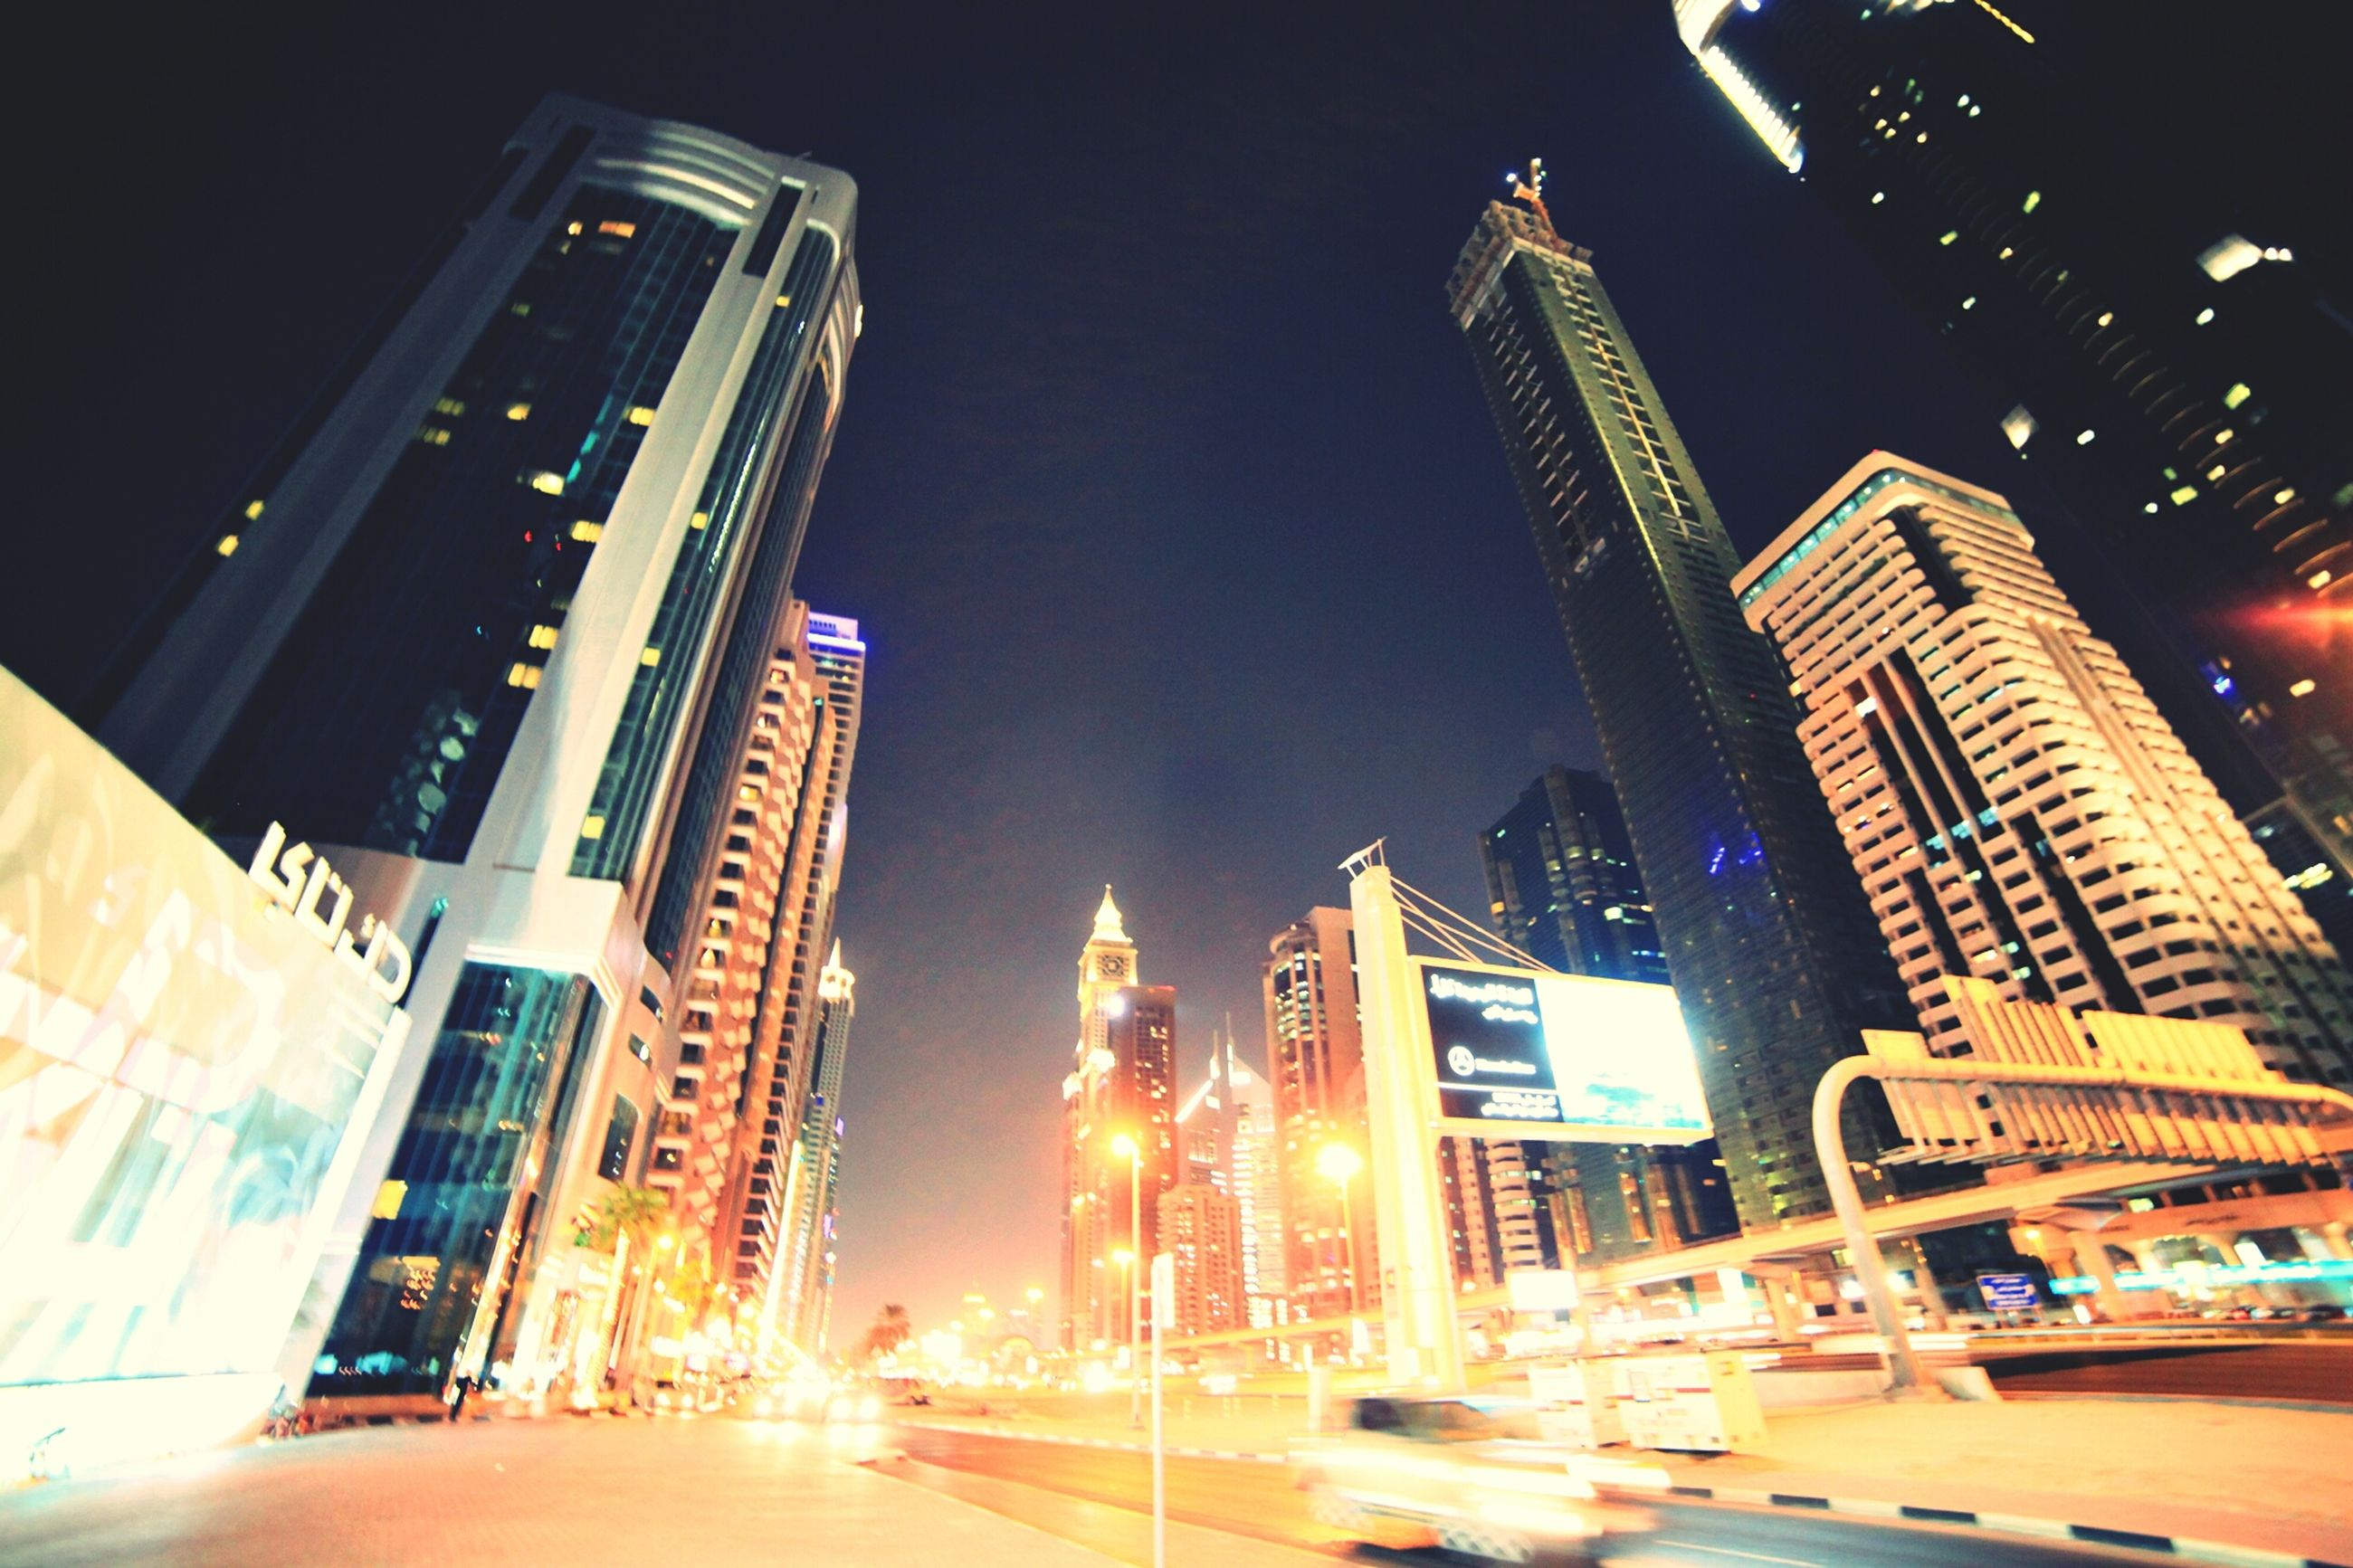 illuminated, architecture, building exterior, night, built structure, city, skyscraper, tall - high, modern, tower, office building, low angle view, street light, city life, capital cities, building, street, travel destinations, sky, financial district